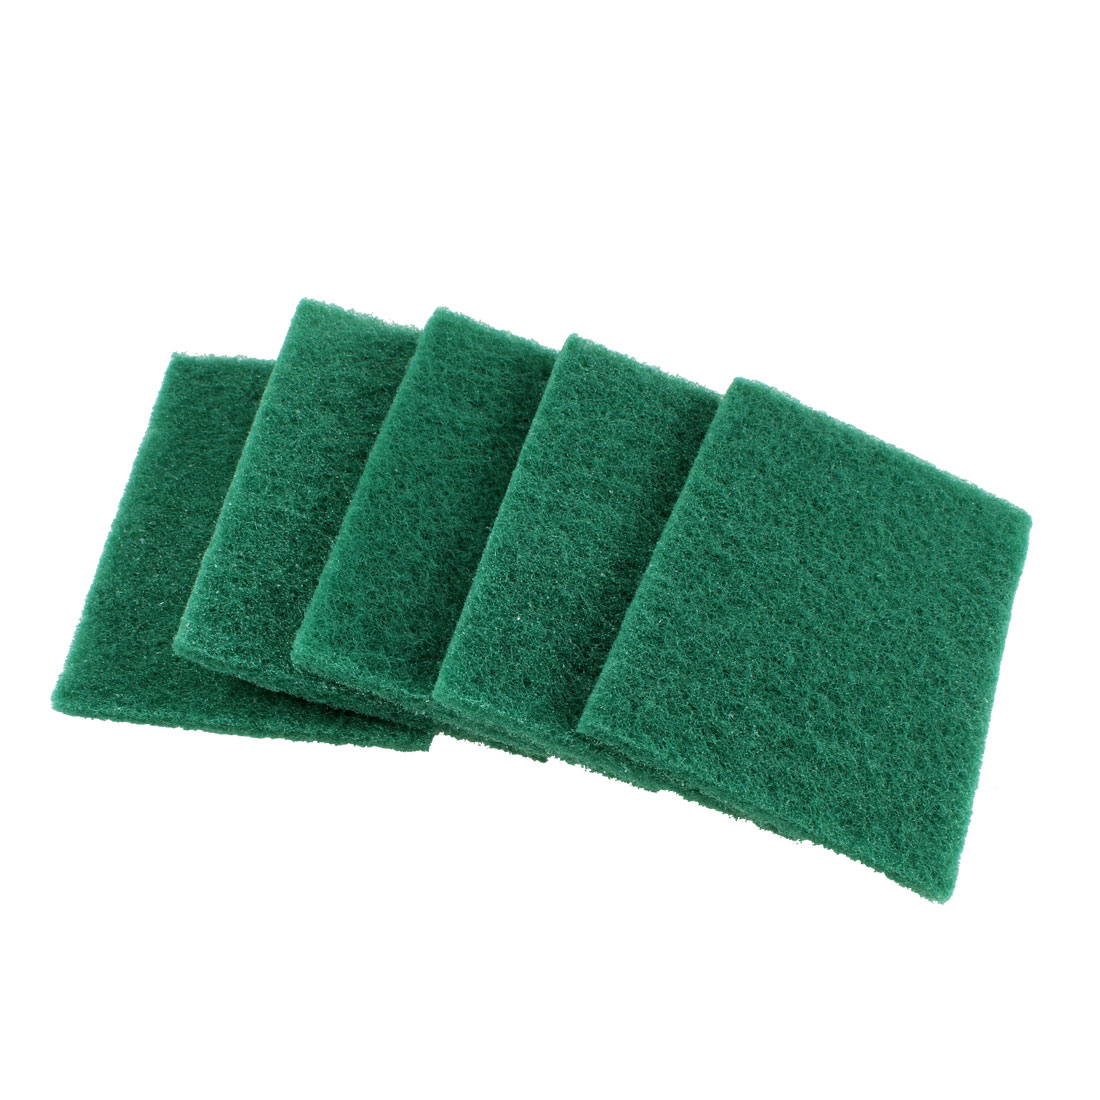 5 Pcs Dark Green Sponge Water Absorbing Cleaning Block